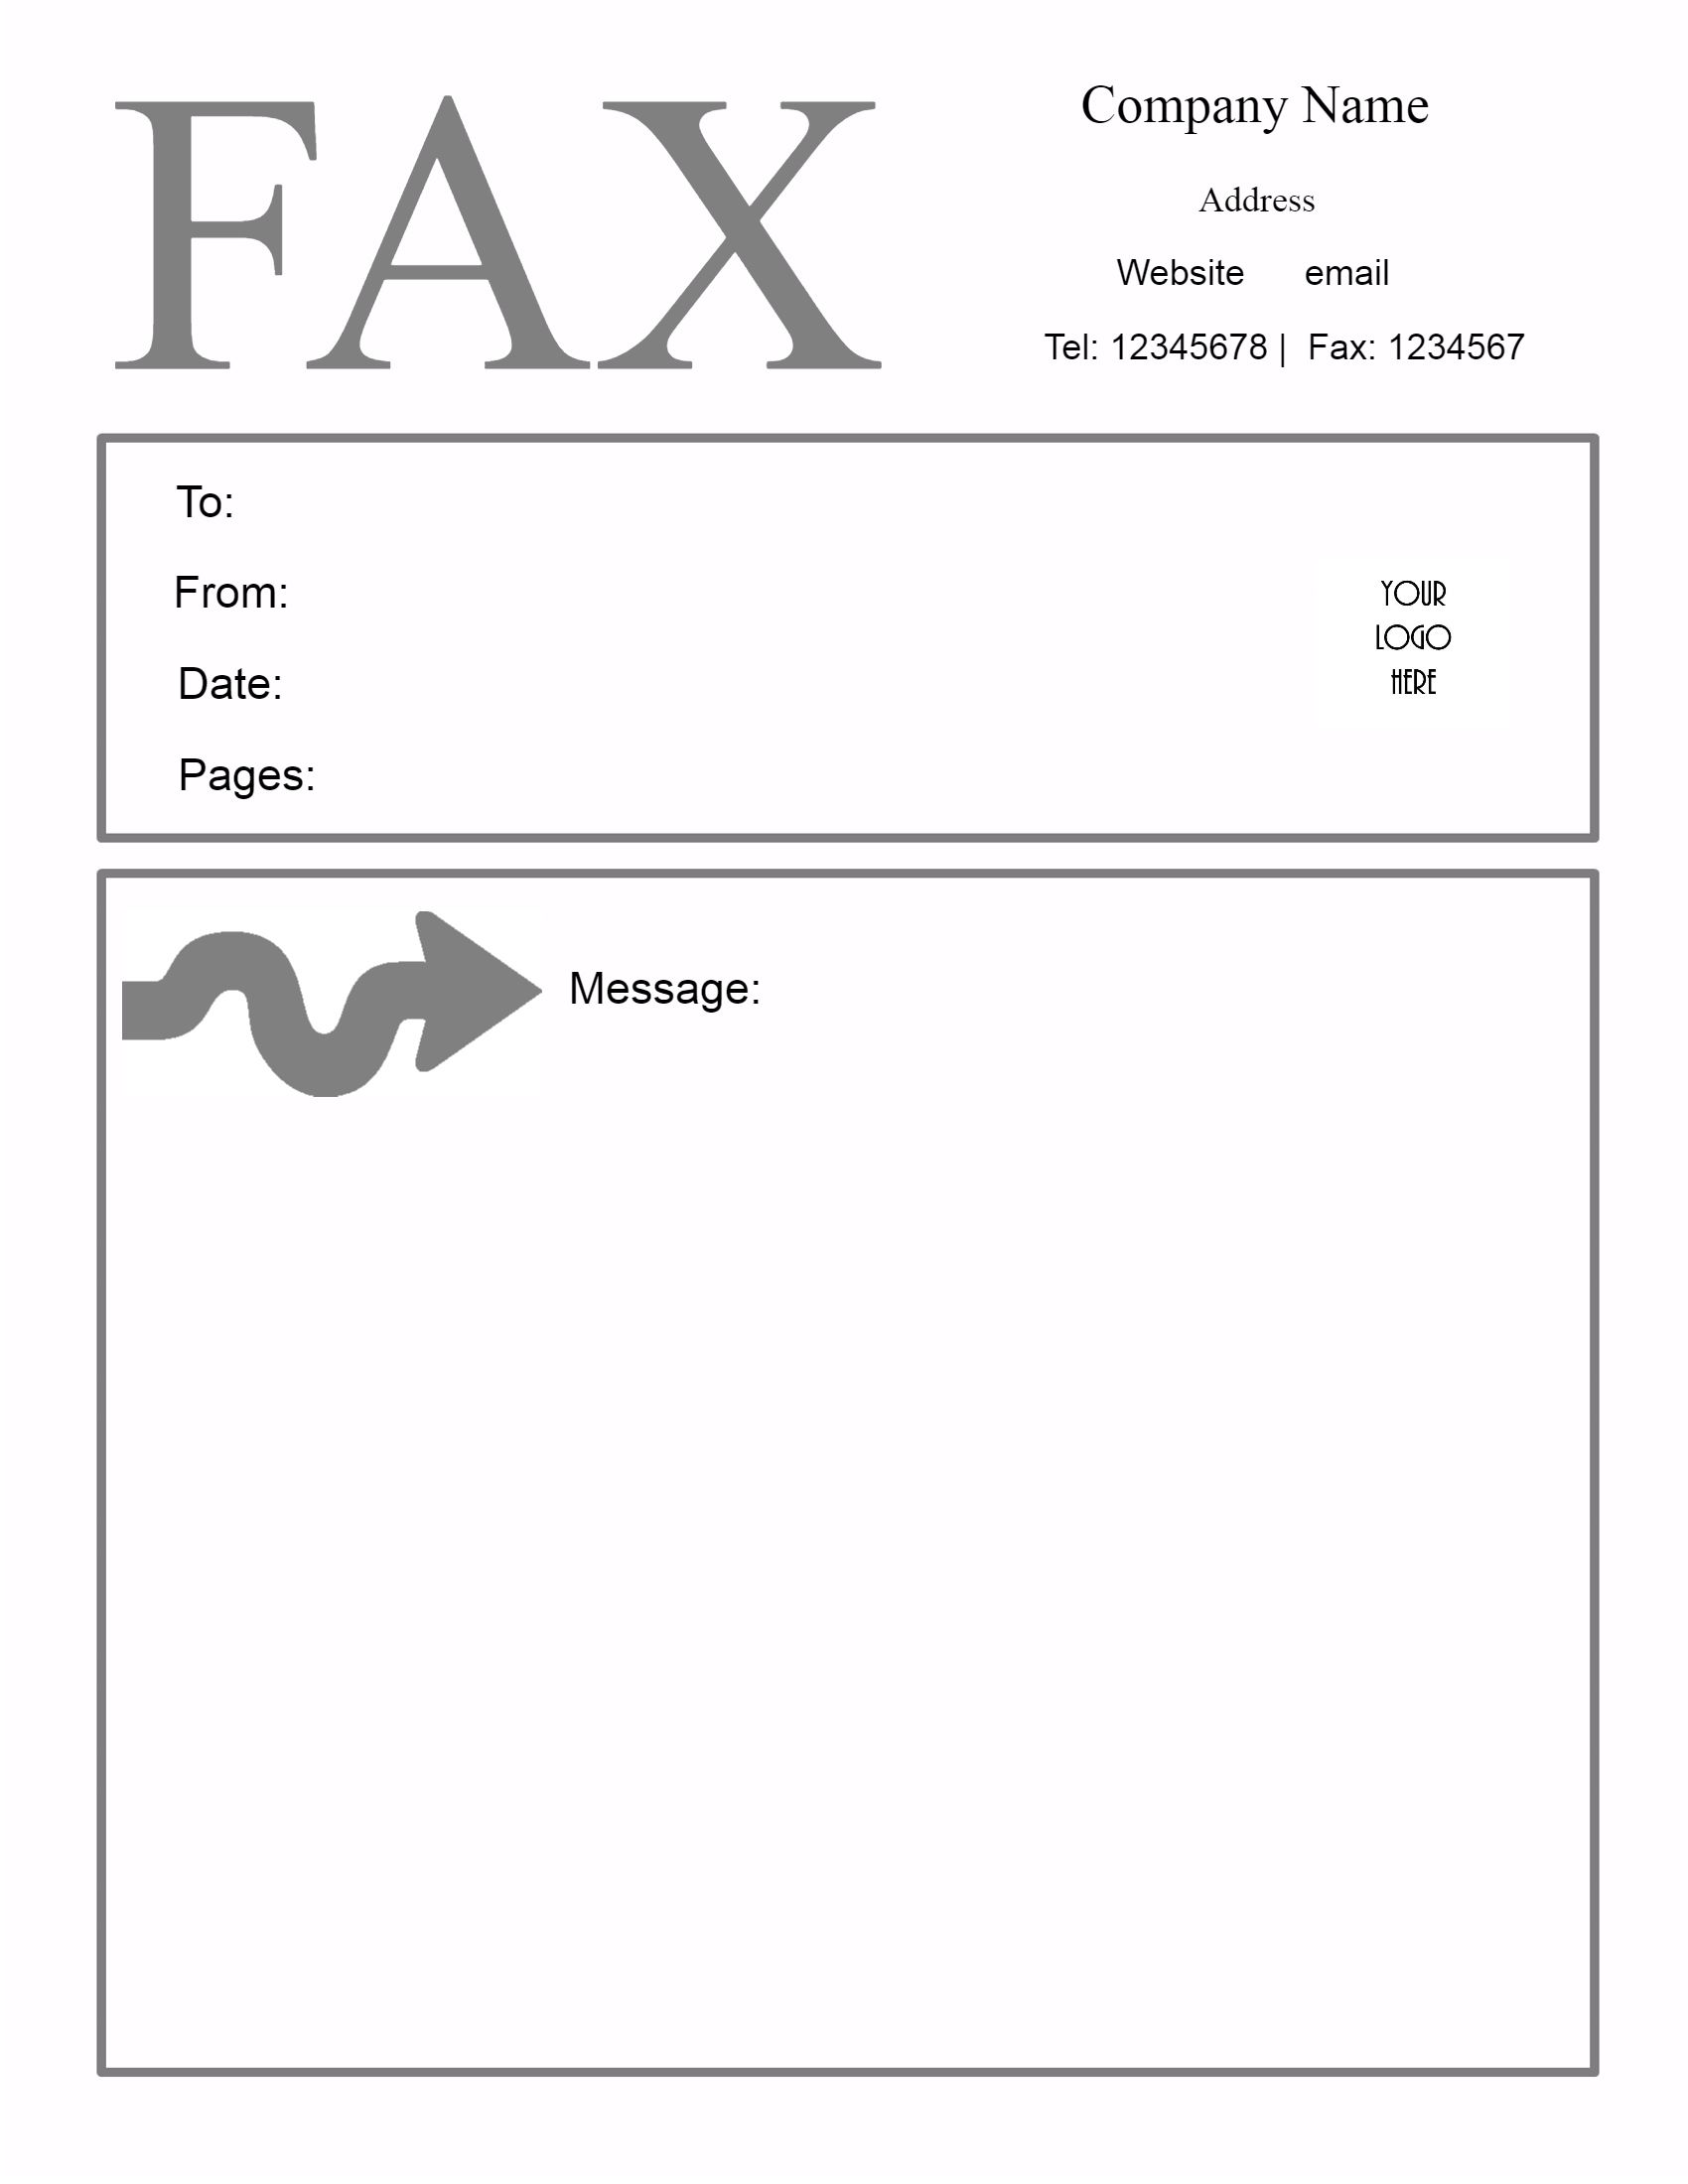 Free Fax Cover Sheet Template – Sample Blank Fax Cover Sheet